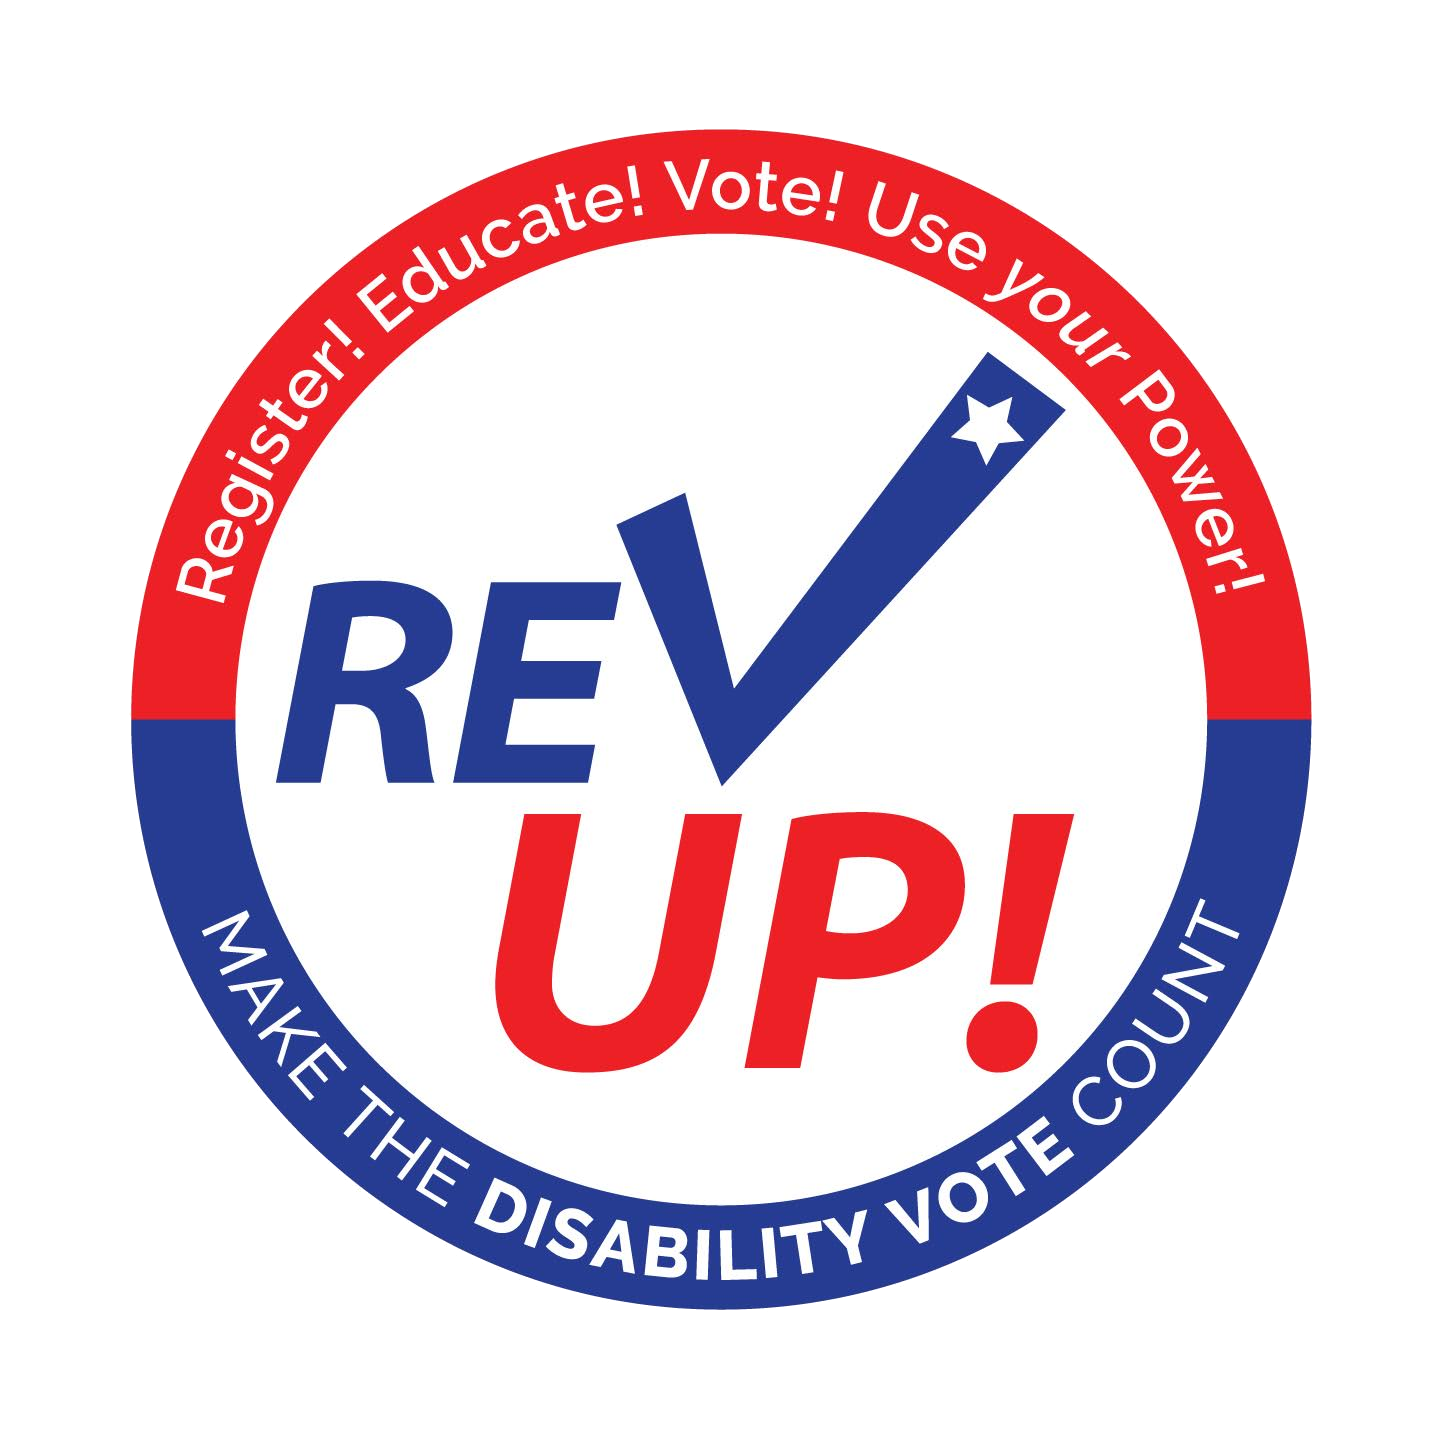 REV UP LOGO TEXT: Register! Educate! Vote! Use your Power! MAKE THE DISABILITY VOTE COUNT